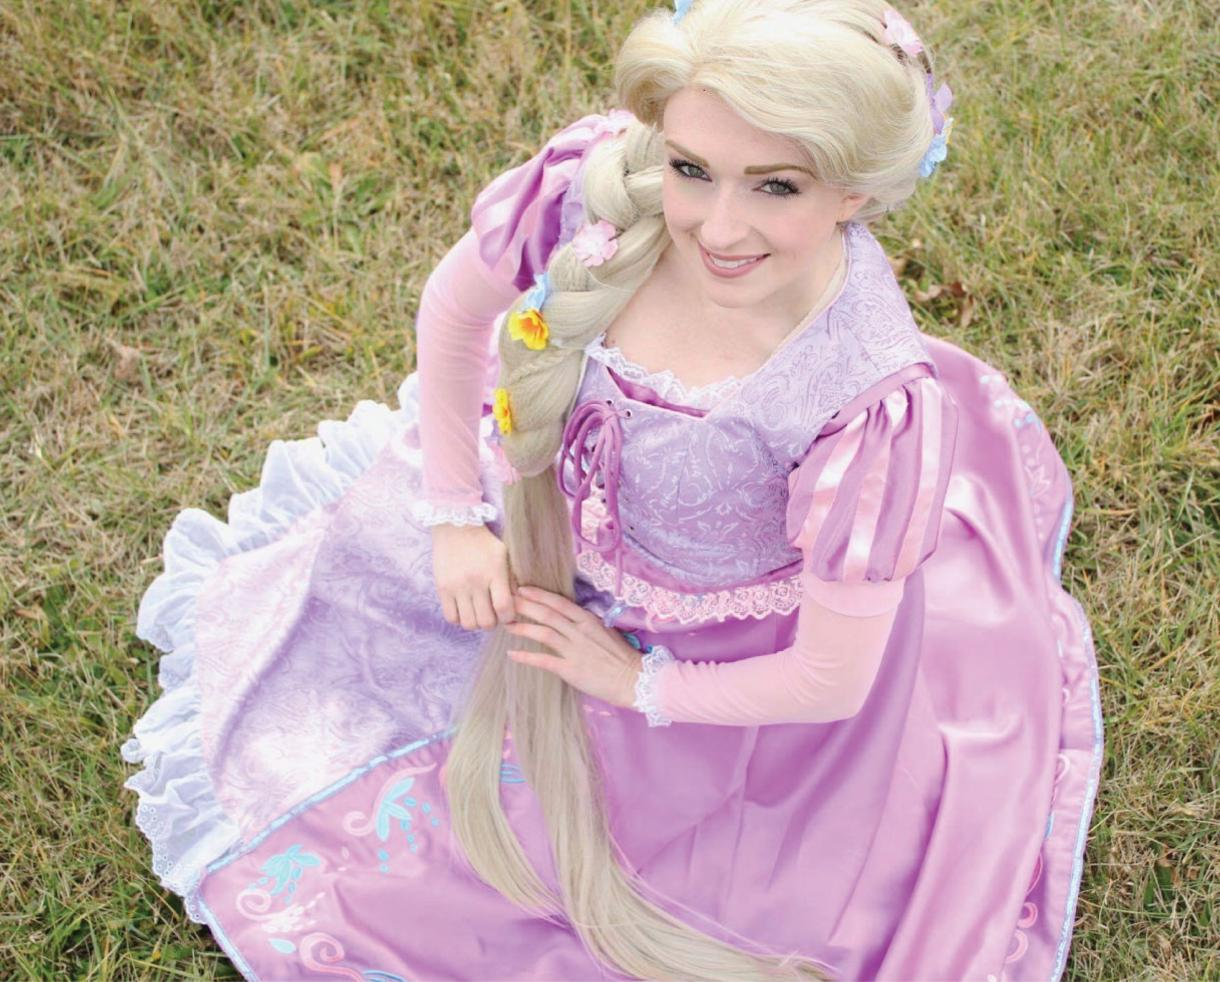 $119 for Princess Appearance with the Princess of Your Choice - Moana, Elsa, Elena, Sofia & More! (24% Off - $155 Value)